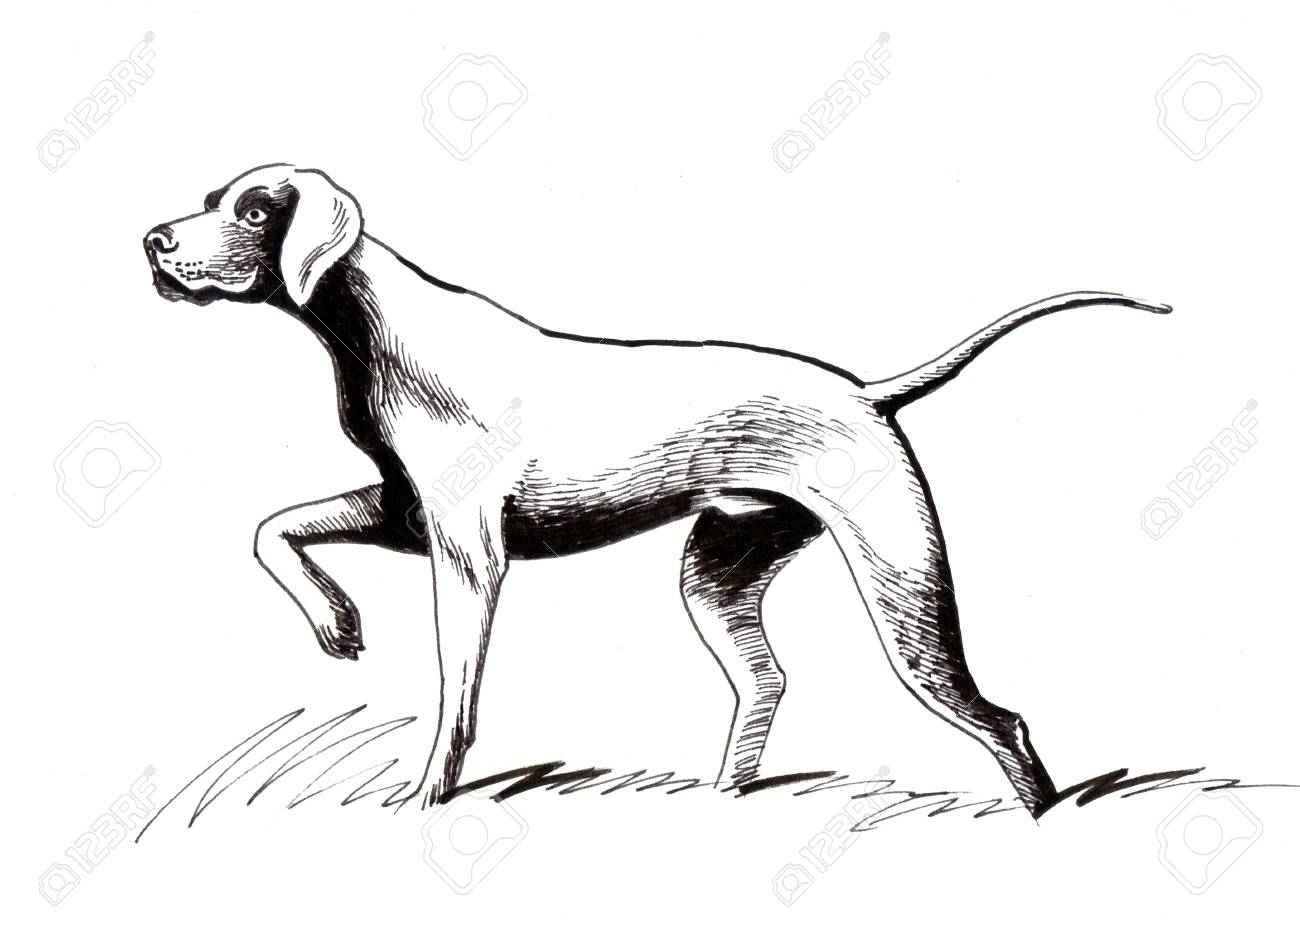 1300x935 Hunting Dog. Ink Illustration Stock Photo, Picture And Royalty